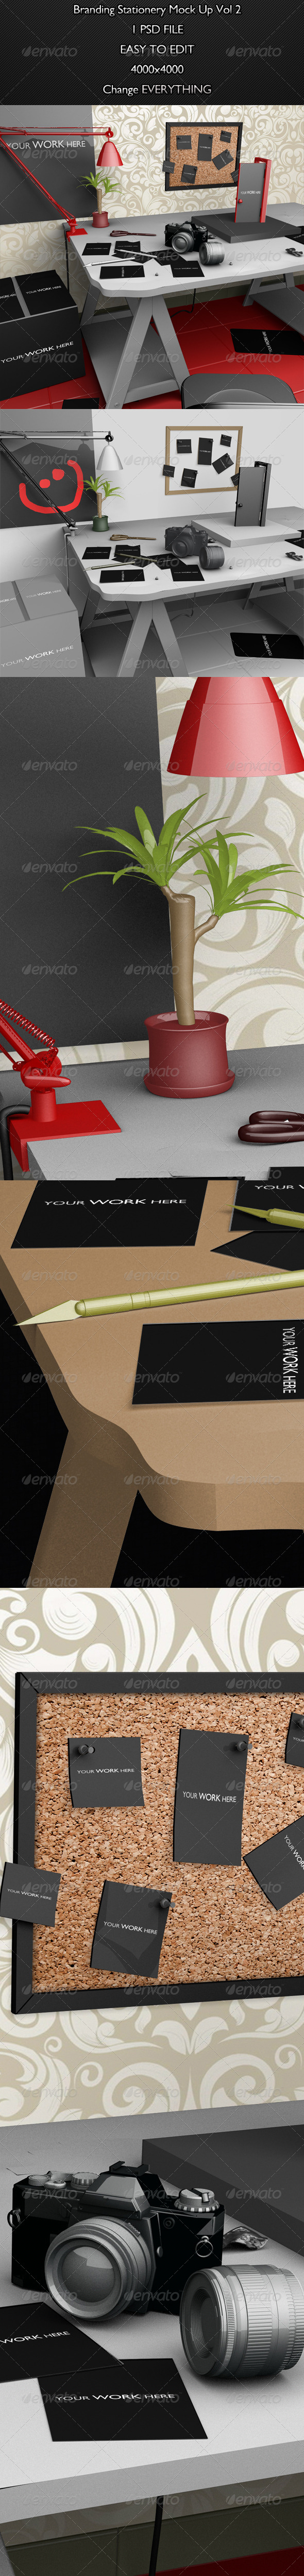 GraphicRiver Branding Stationery Mock Up Vol 2 6326767